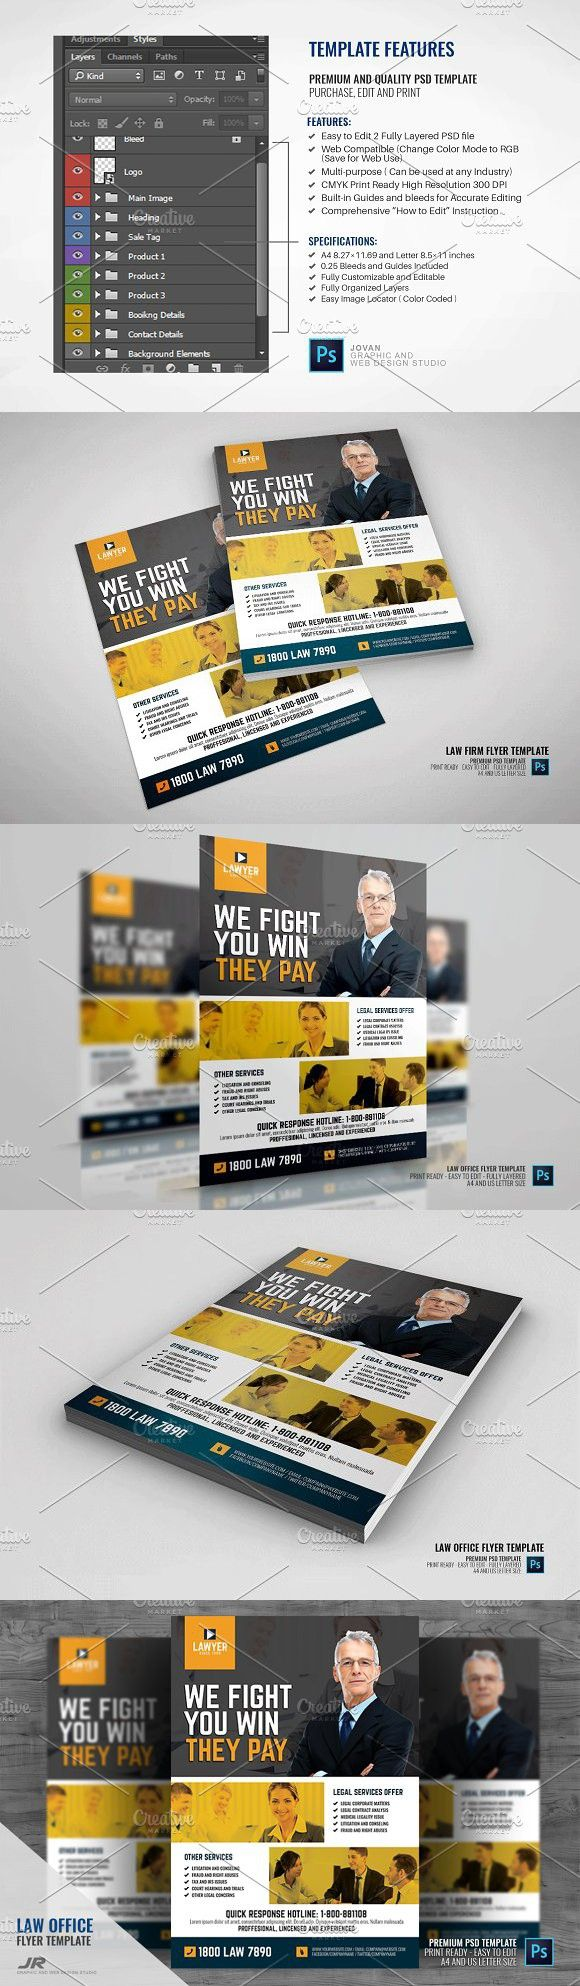 Law Firm and Law Office Flyer | Flyer design templates, Flyer ...